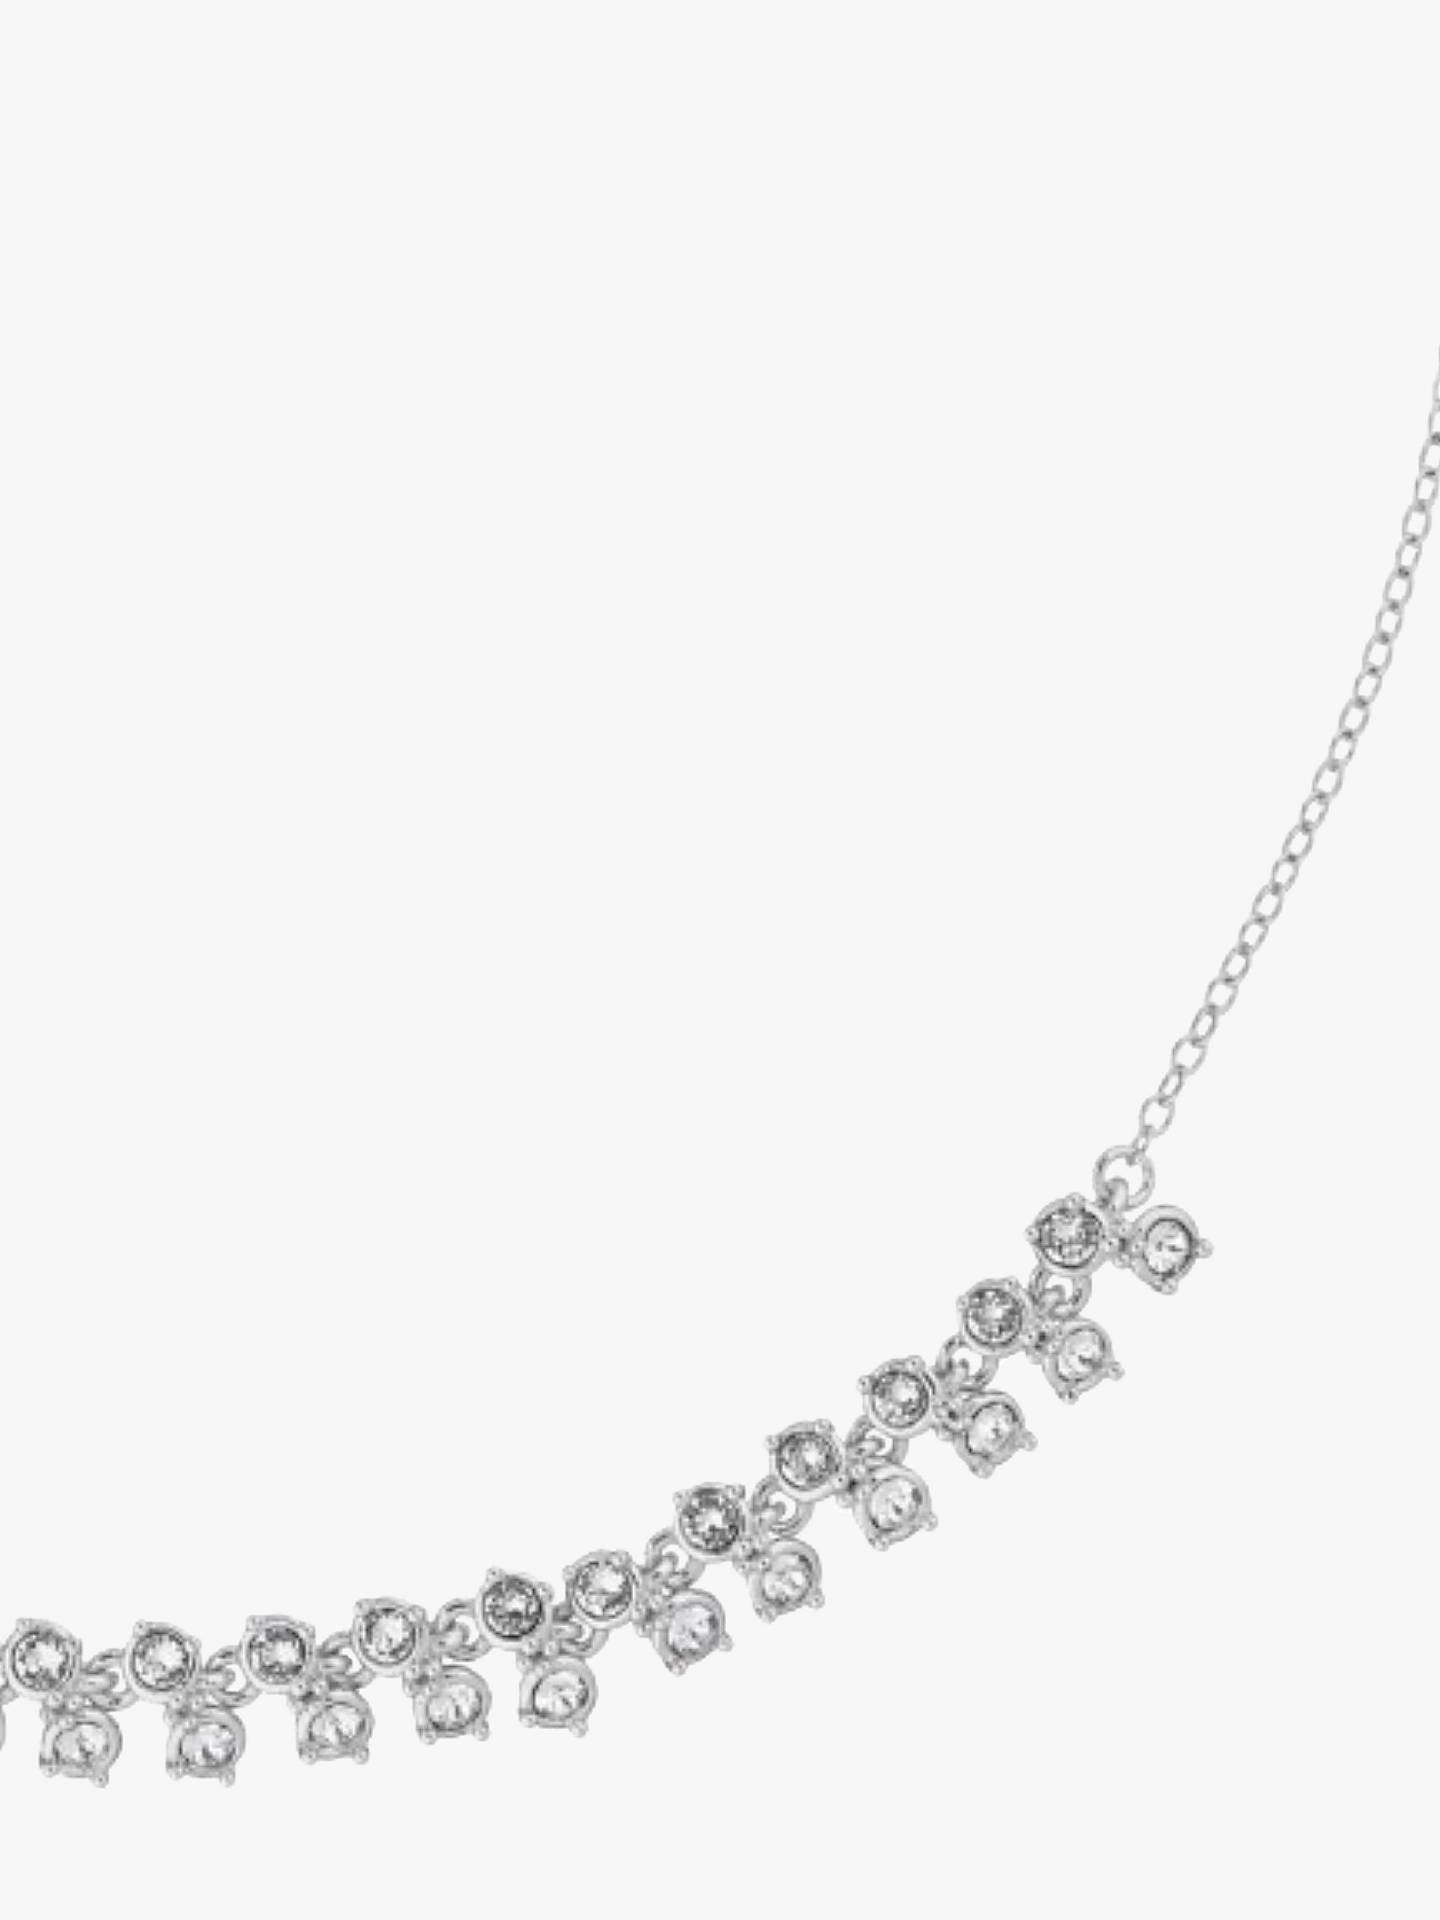 BuyTed Baker Eada Princess Sparkle Collar Necklace, Silver Online at johnlewis.com